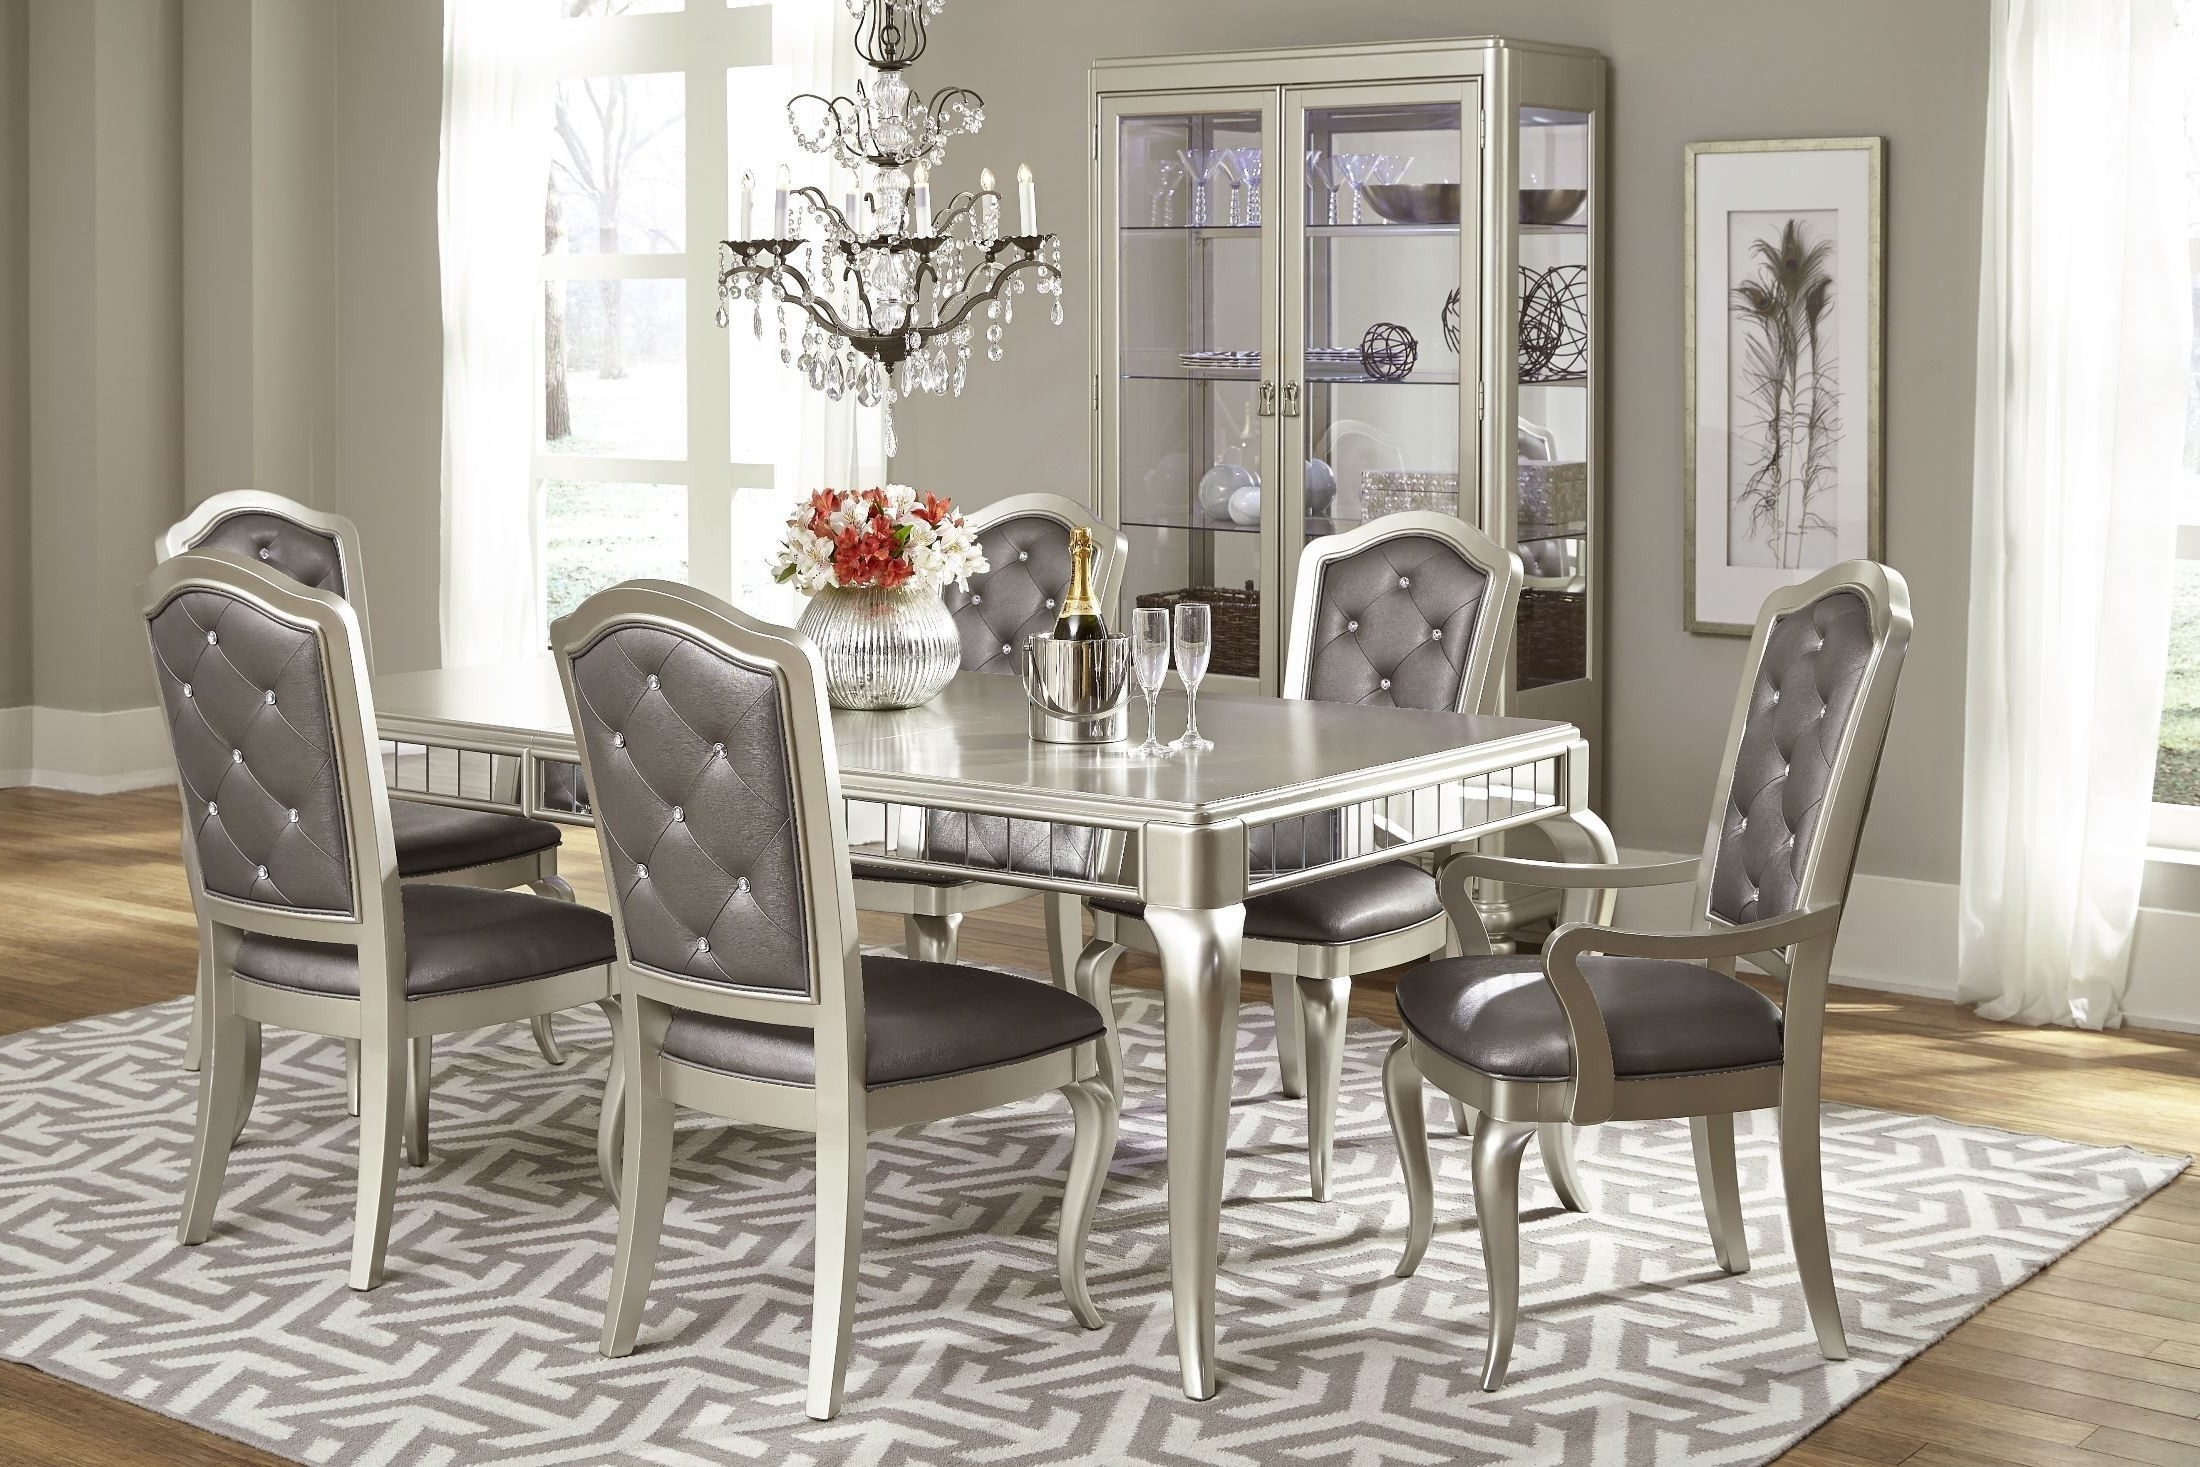 Preferred Diva Metallic Rectangular Leg Dining Table (View 15 of 25)